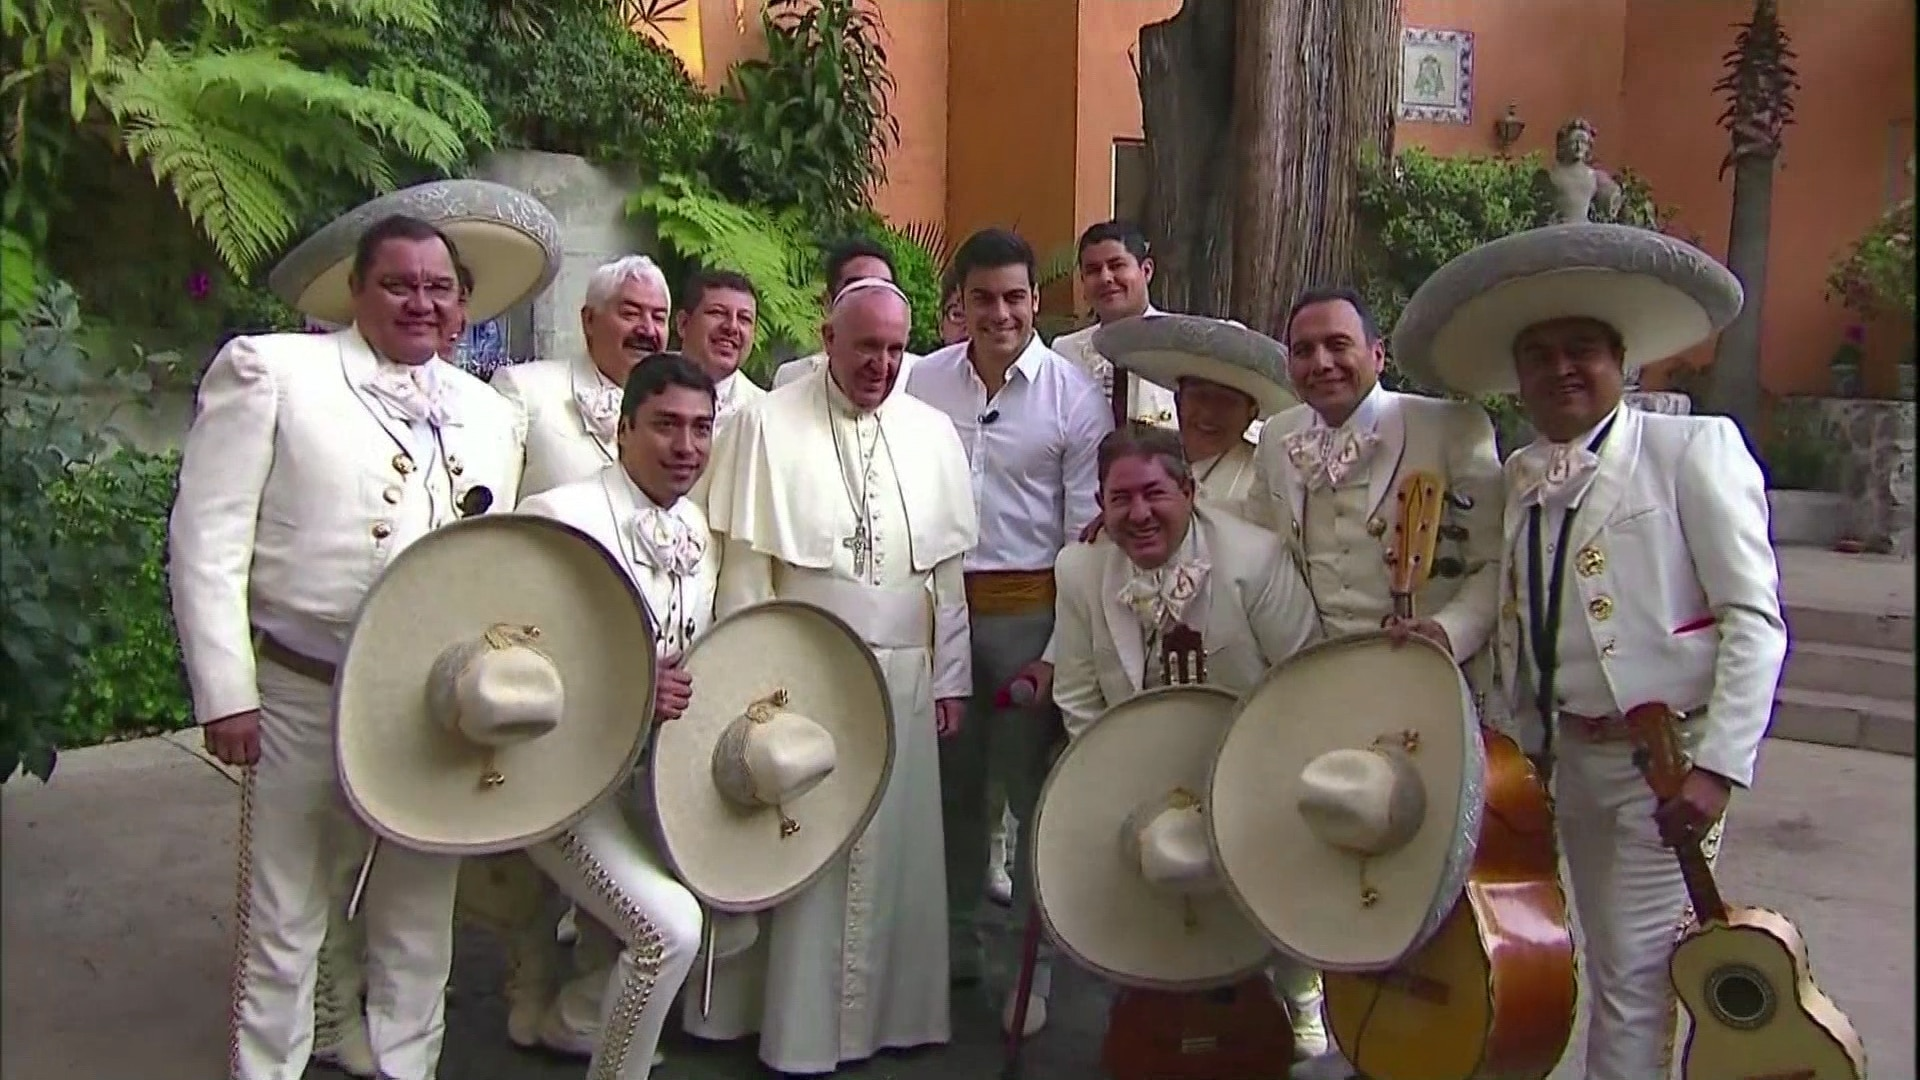 Mariachis homenageiam papa Francisco